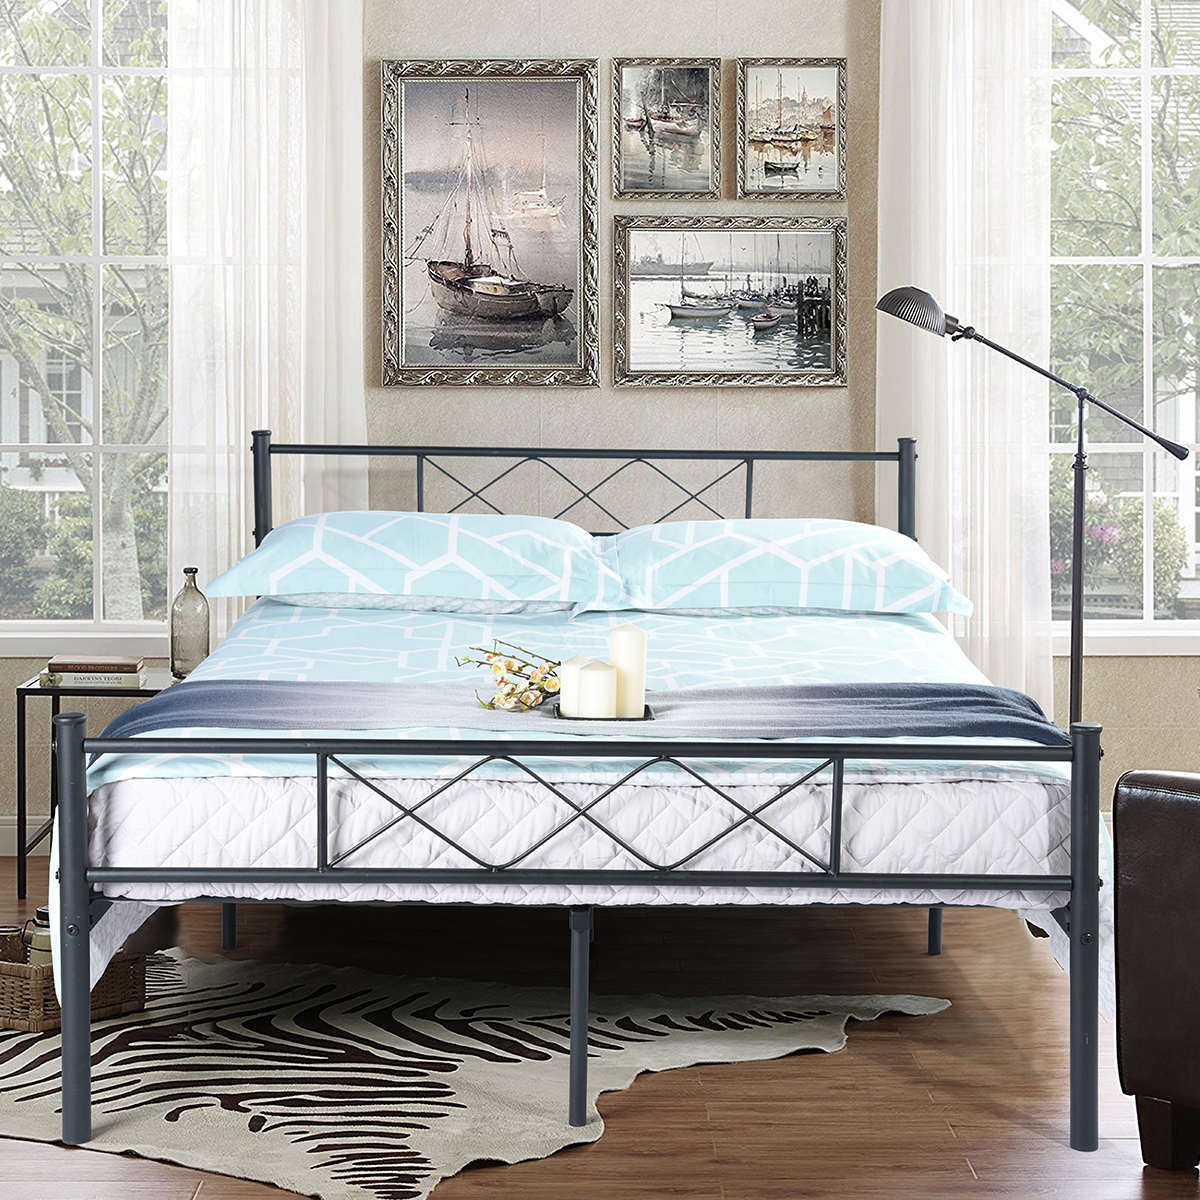 Easy Set Up Premium Metal Bed Frame Platform Box Spring